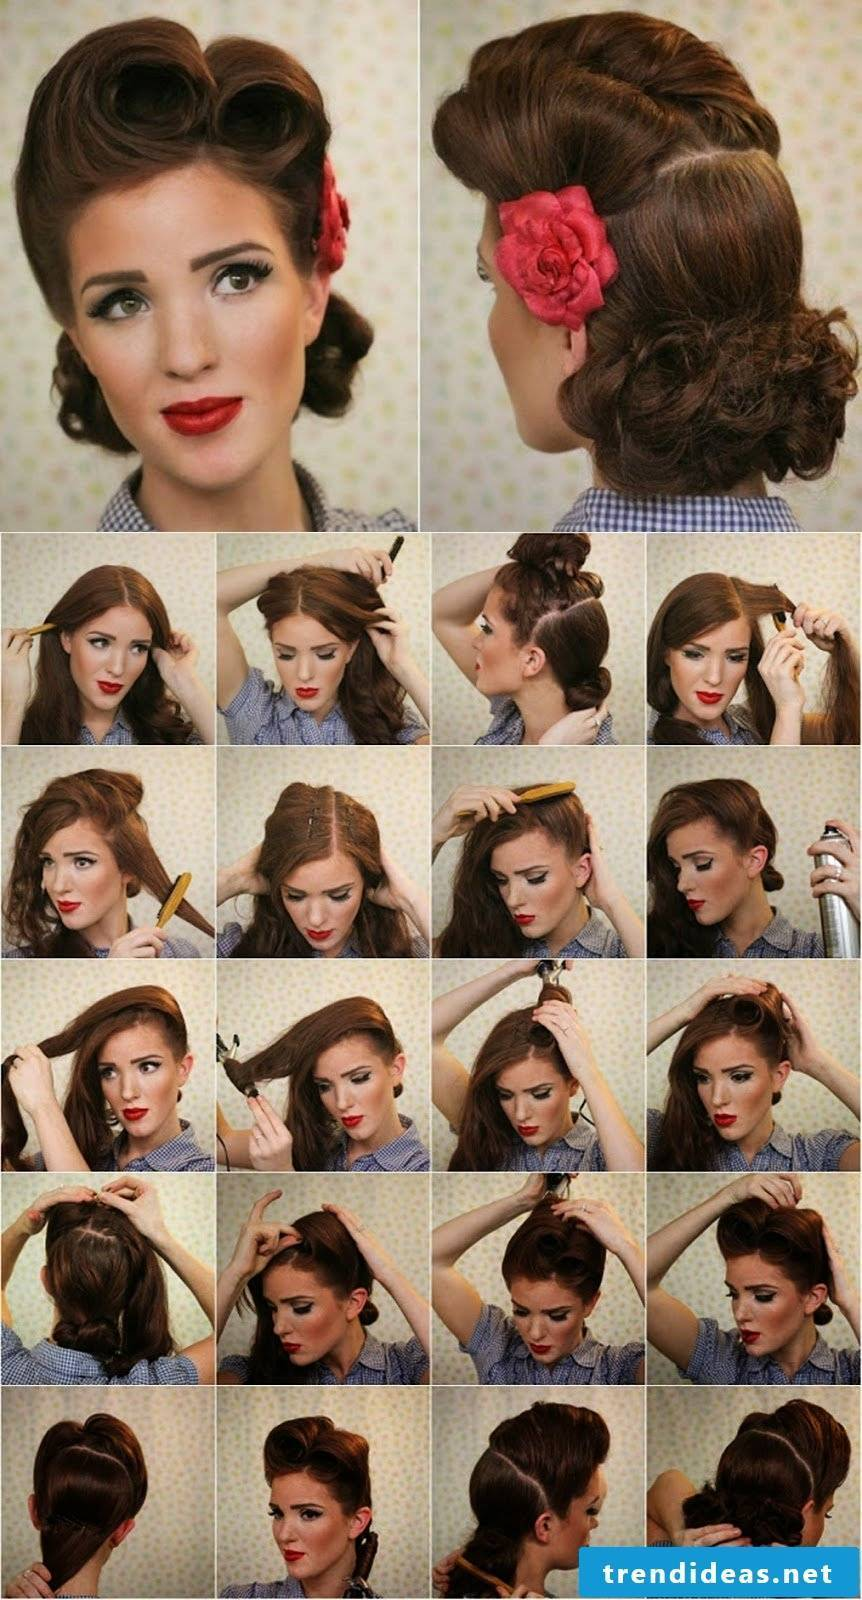 Photo tutorials for hairstyles in the typical Rockabilly style